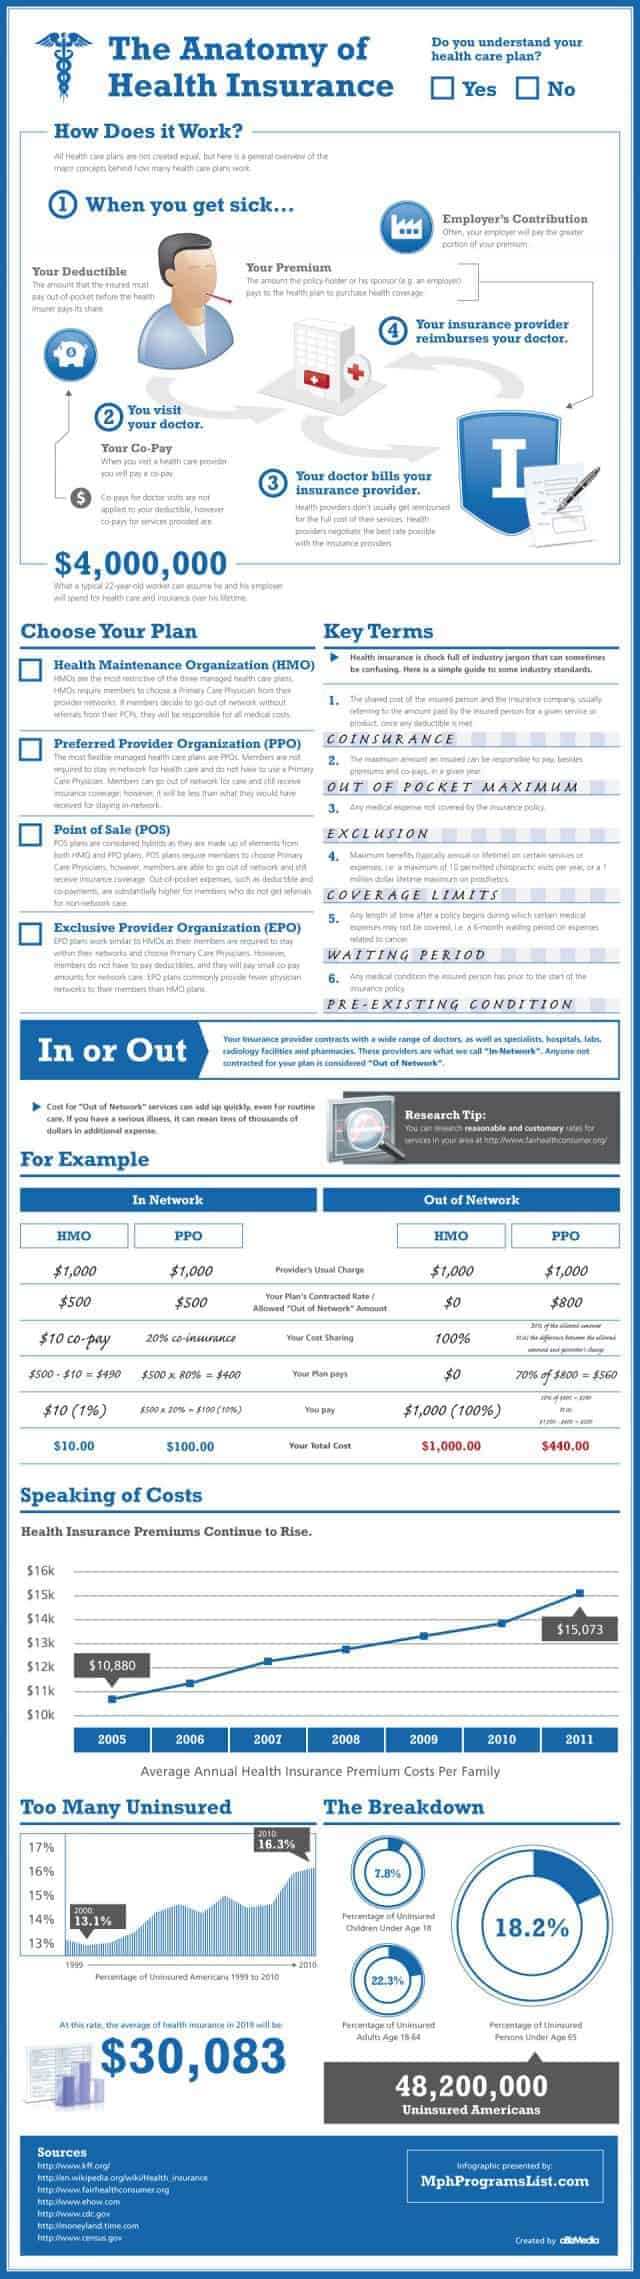 Overview of Health Insurance